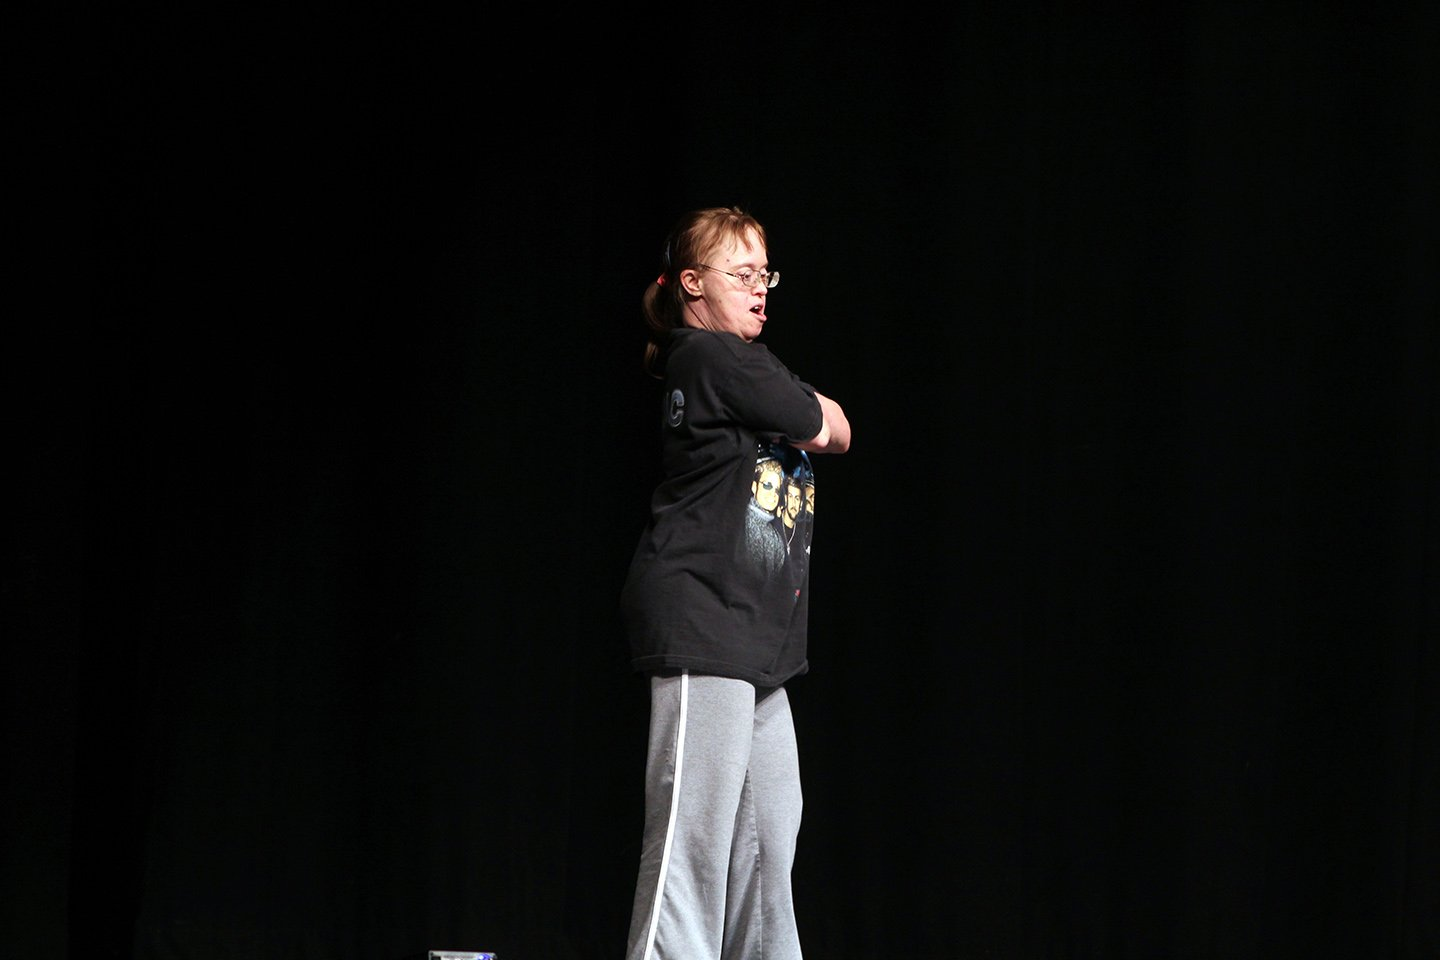 """Community member Amy Kells starts off in a pose for her dance routine to """"Everybody (Backstreet's Back)"""" by the Backstreet Boys."""